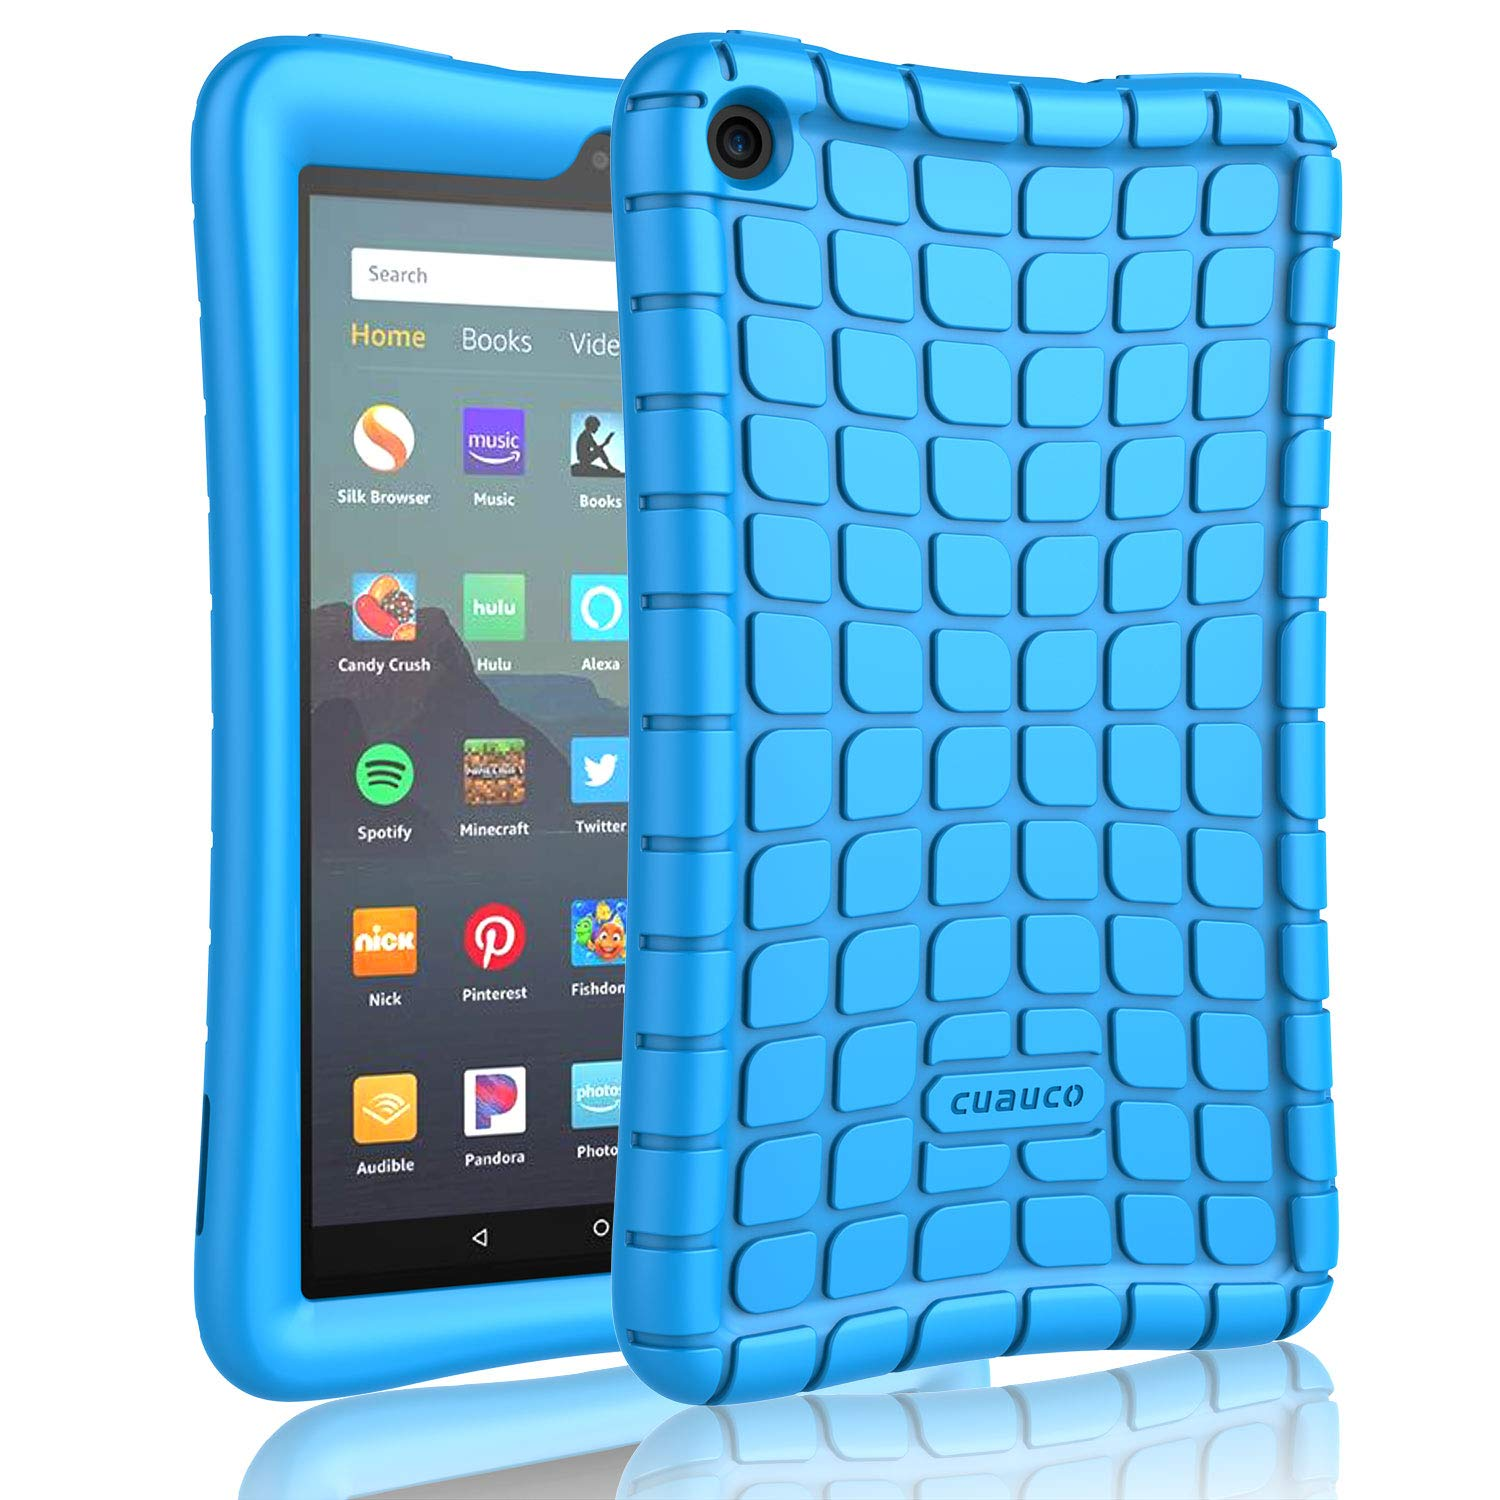 """Cuauco Silicone Case for All-New Amazon Fire 7 Tablet (9th Generation, 2019 Release)-[Kids Friendly] Light Weight [Anti Slip] Shock Proof Protective Cover for All-New Fire 7 Tablet (7"""" Display)(Blue)"""